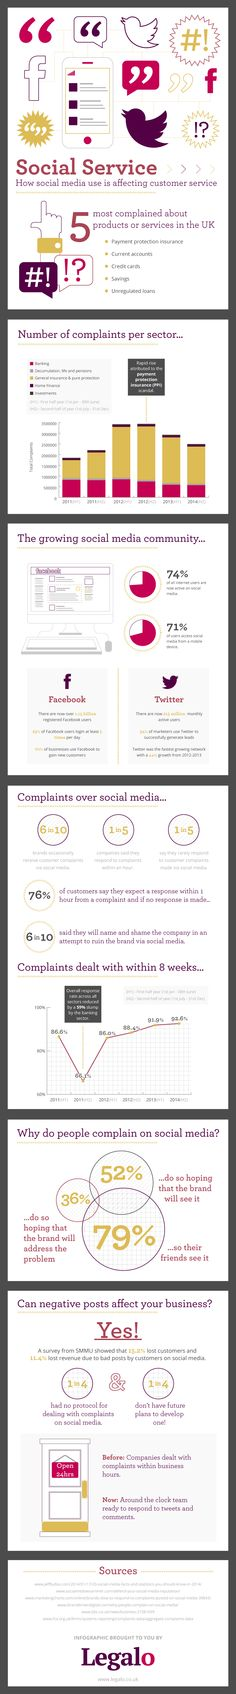 How Social Media Is Affecting Customer Service (Infographic): http://www.providesupport.com/blog/social-media-affecting-customer-service/ #custserv #infographic